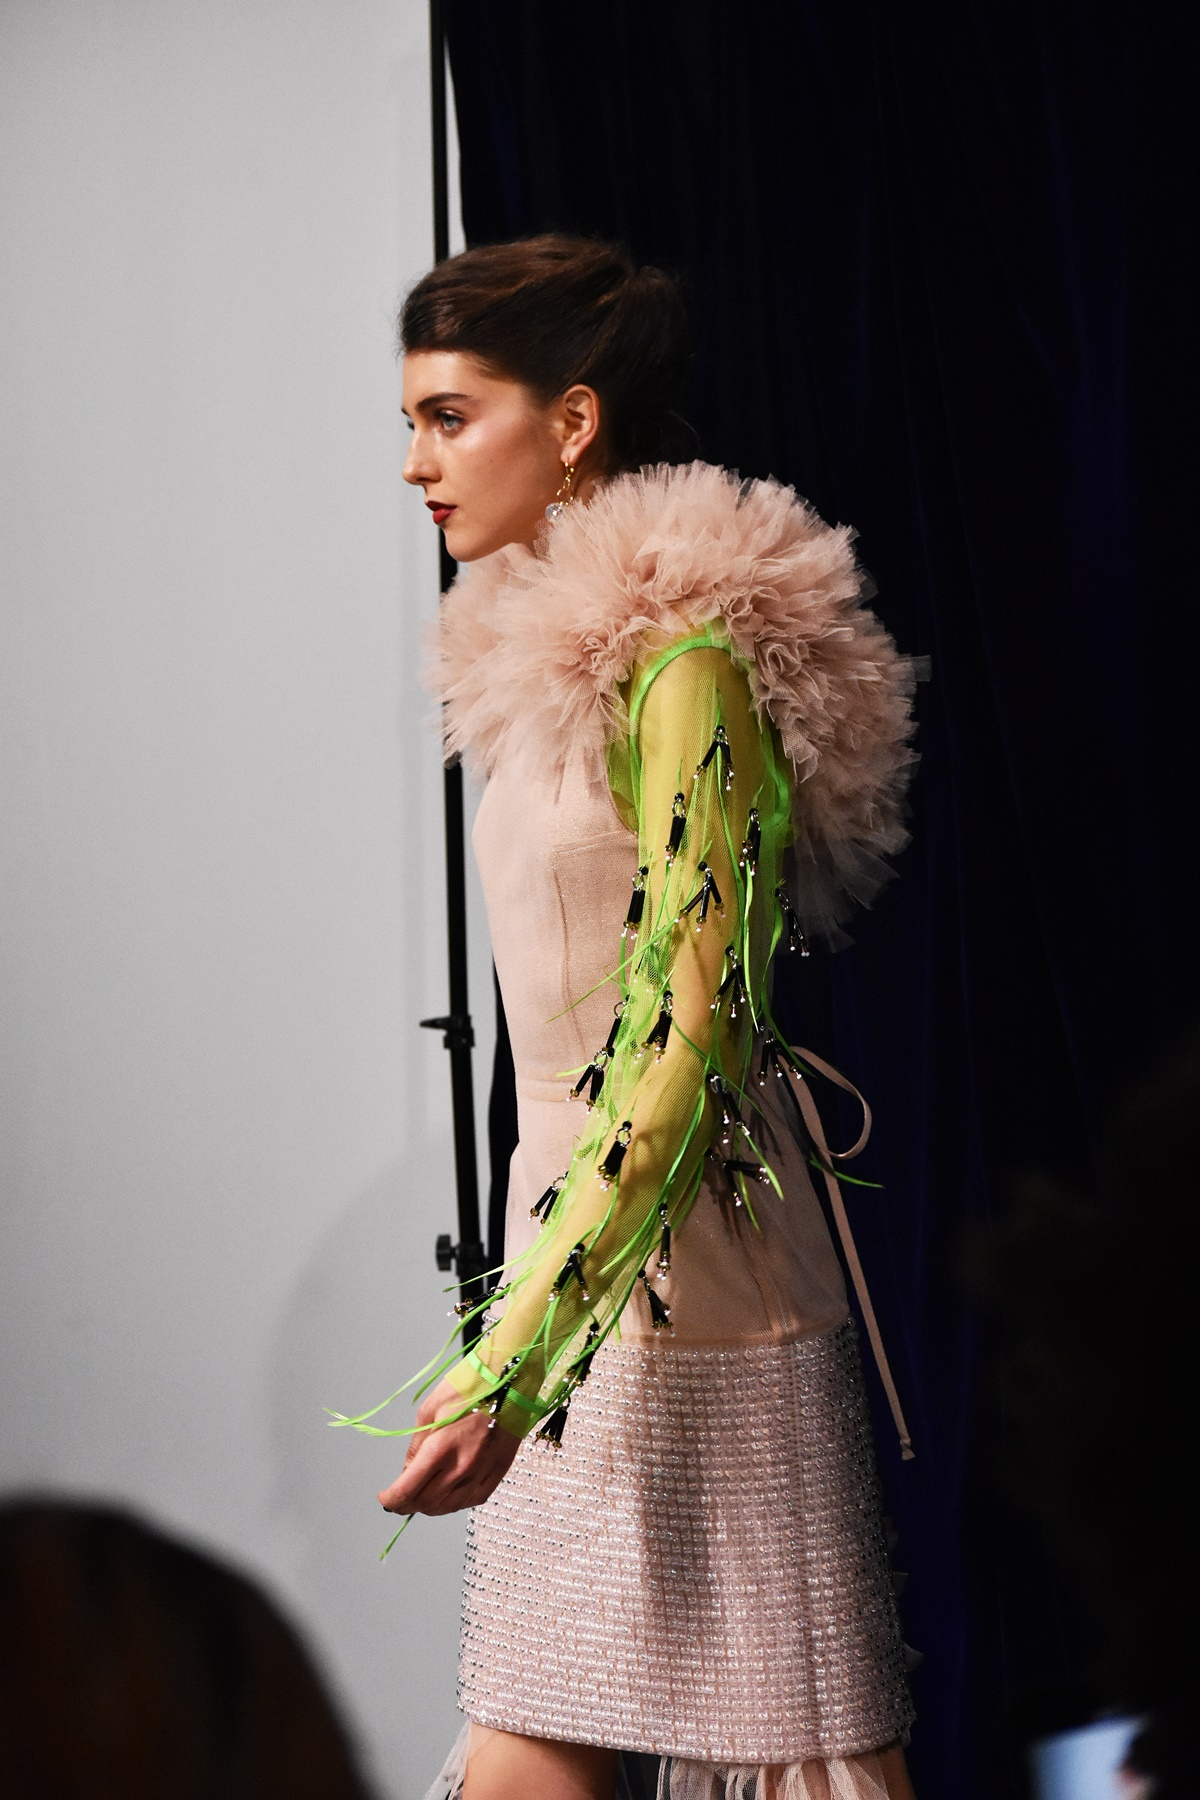 Longshaw Word AW19 by On/Off London at LFW February 2019